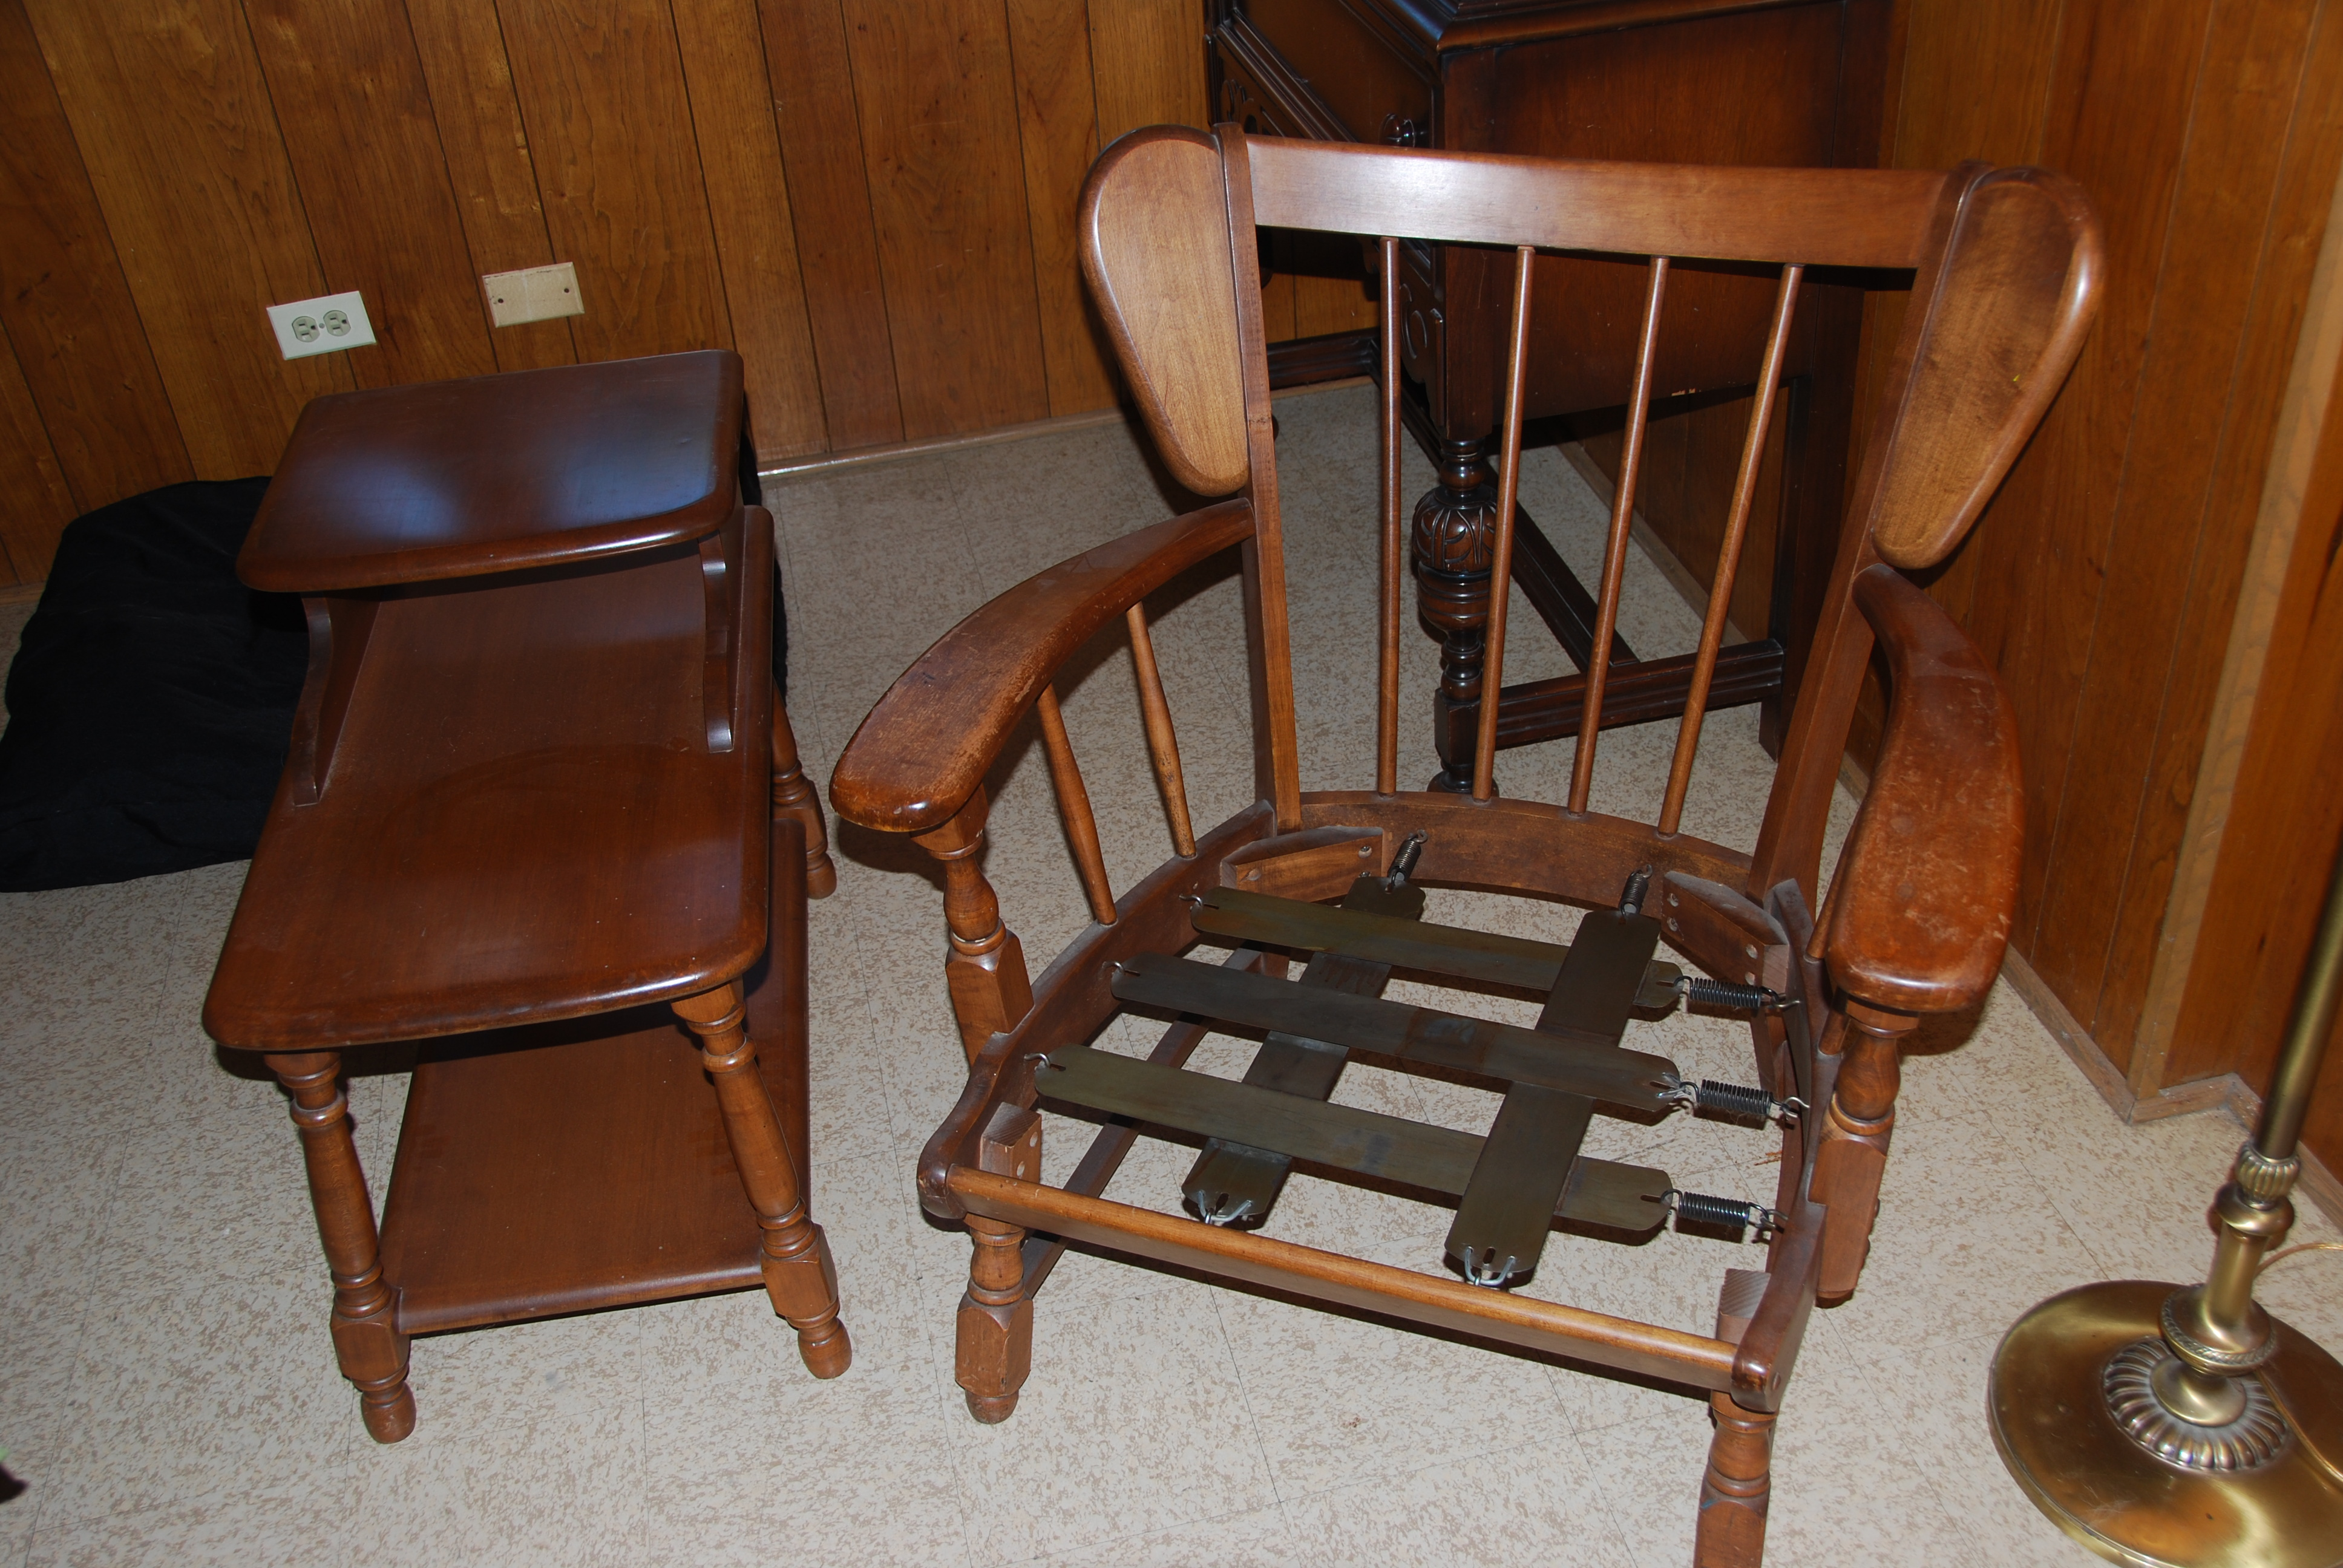 Heywood-Wakefield lounge chair and side table & Heywood-Wakefield lounge chair and side table antique appraisal ...